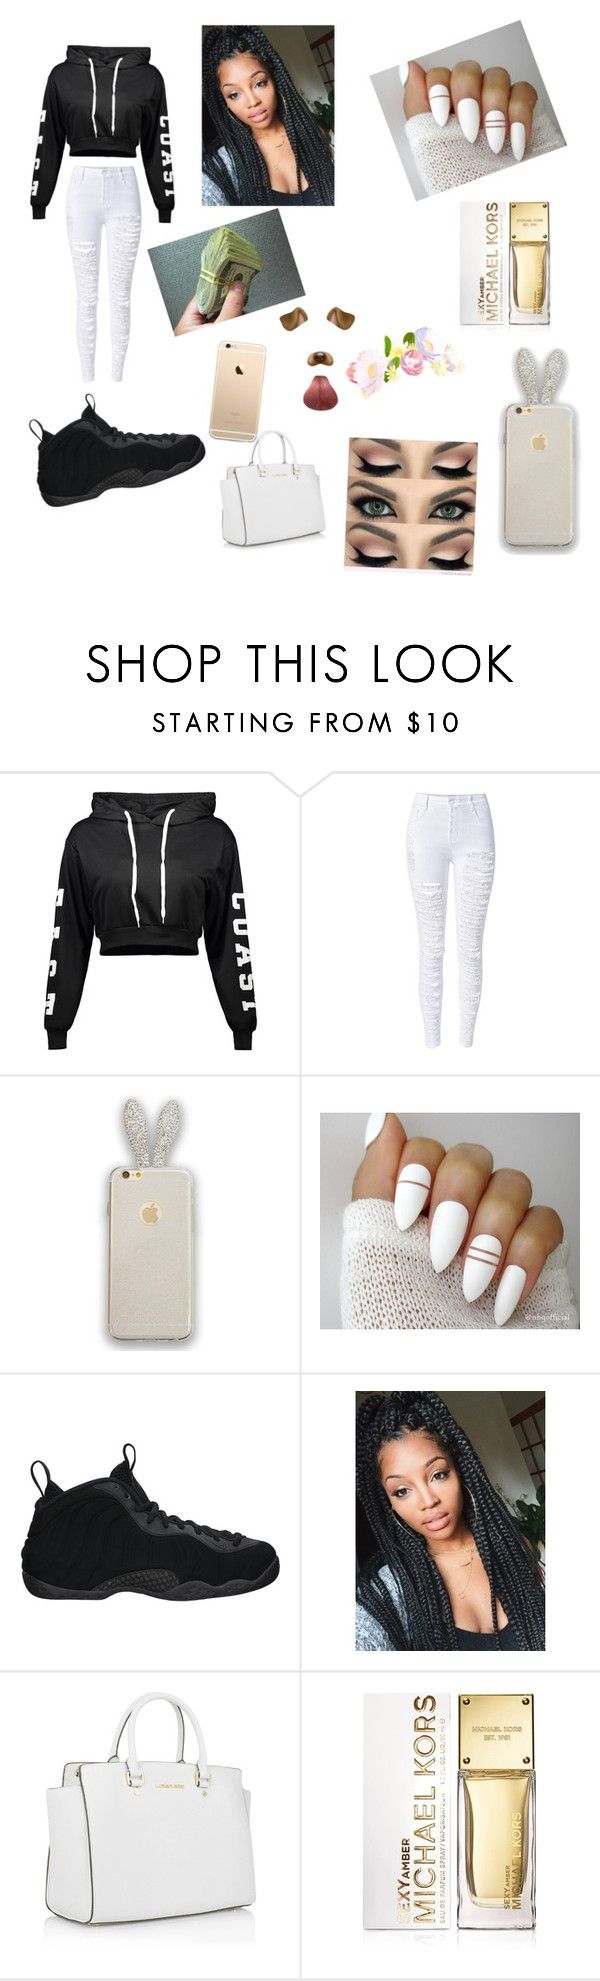 """""""This is what happens when I'm bored😕😐"""" by cedayeg1 ❤ liked on Polyvore featuring WithChic, NIKE, Michael Kors and MICHAEL Michael Kors"""